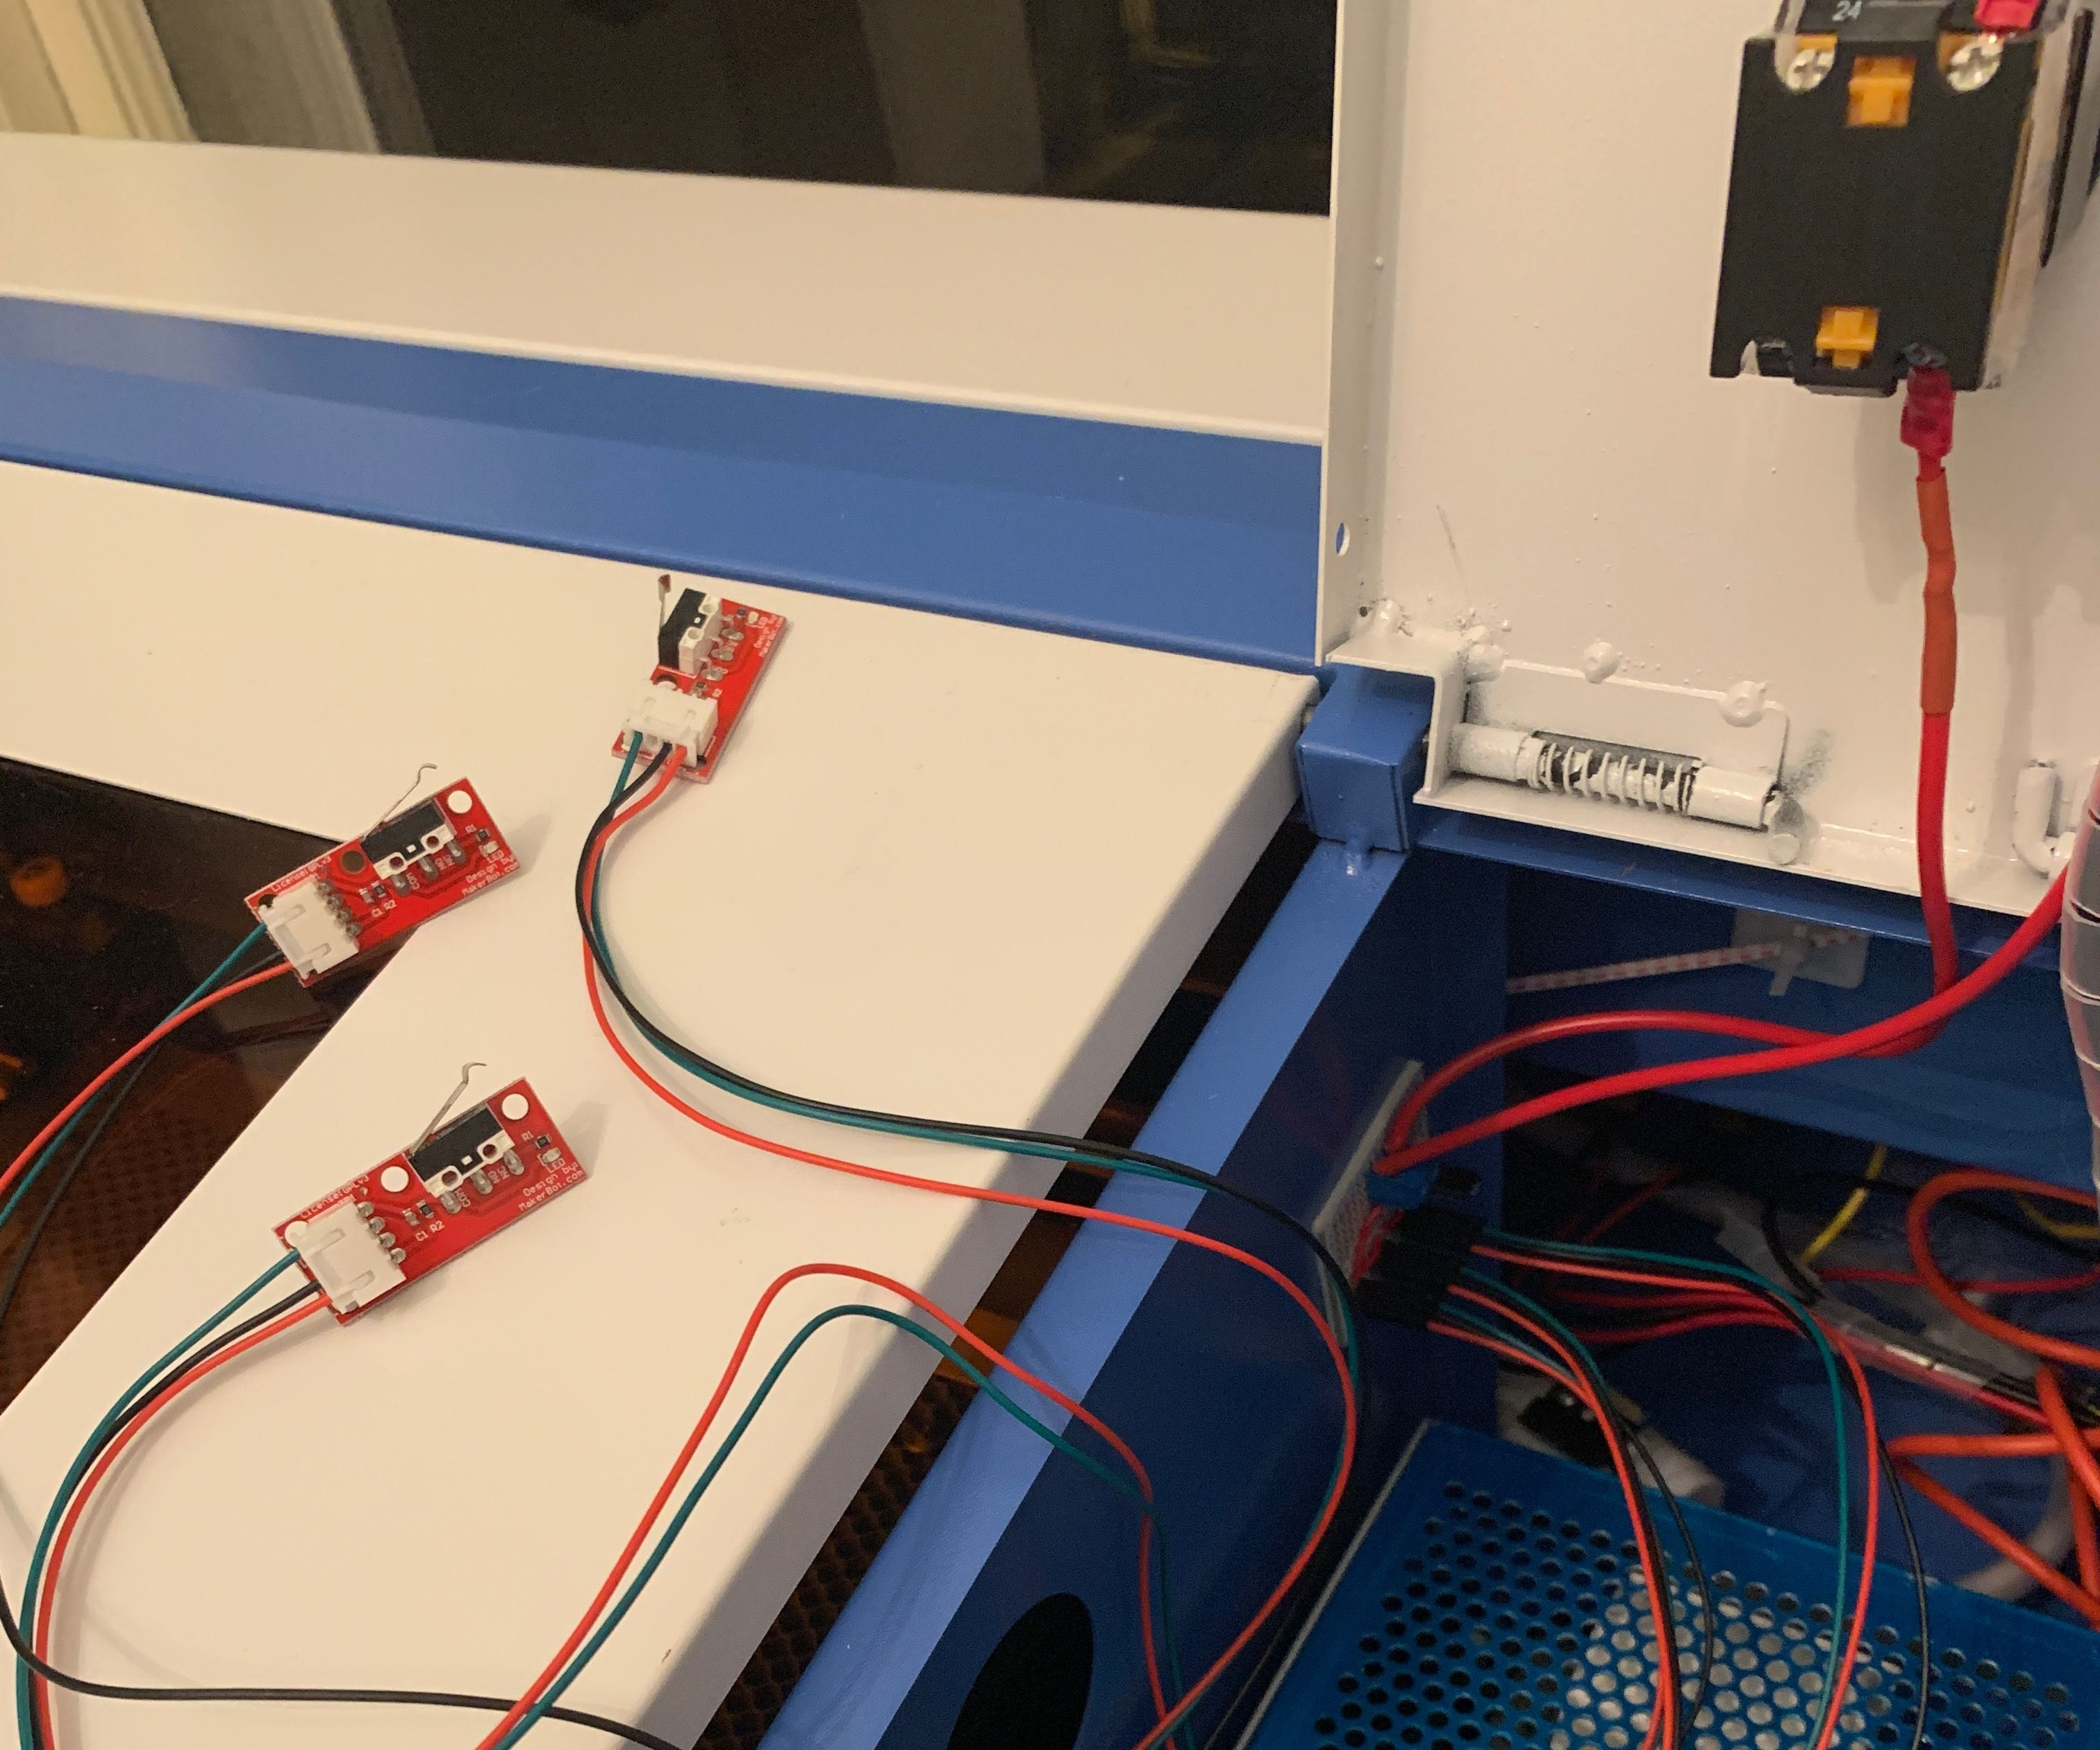 How to Make Interlock Safety Switches for K40 Laser Cutter